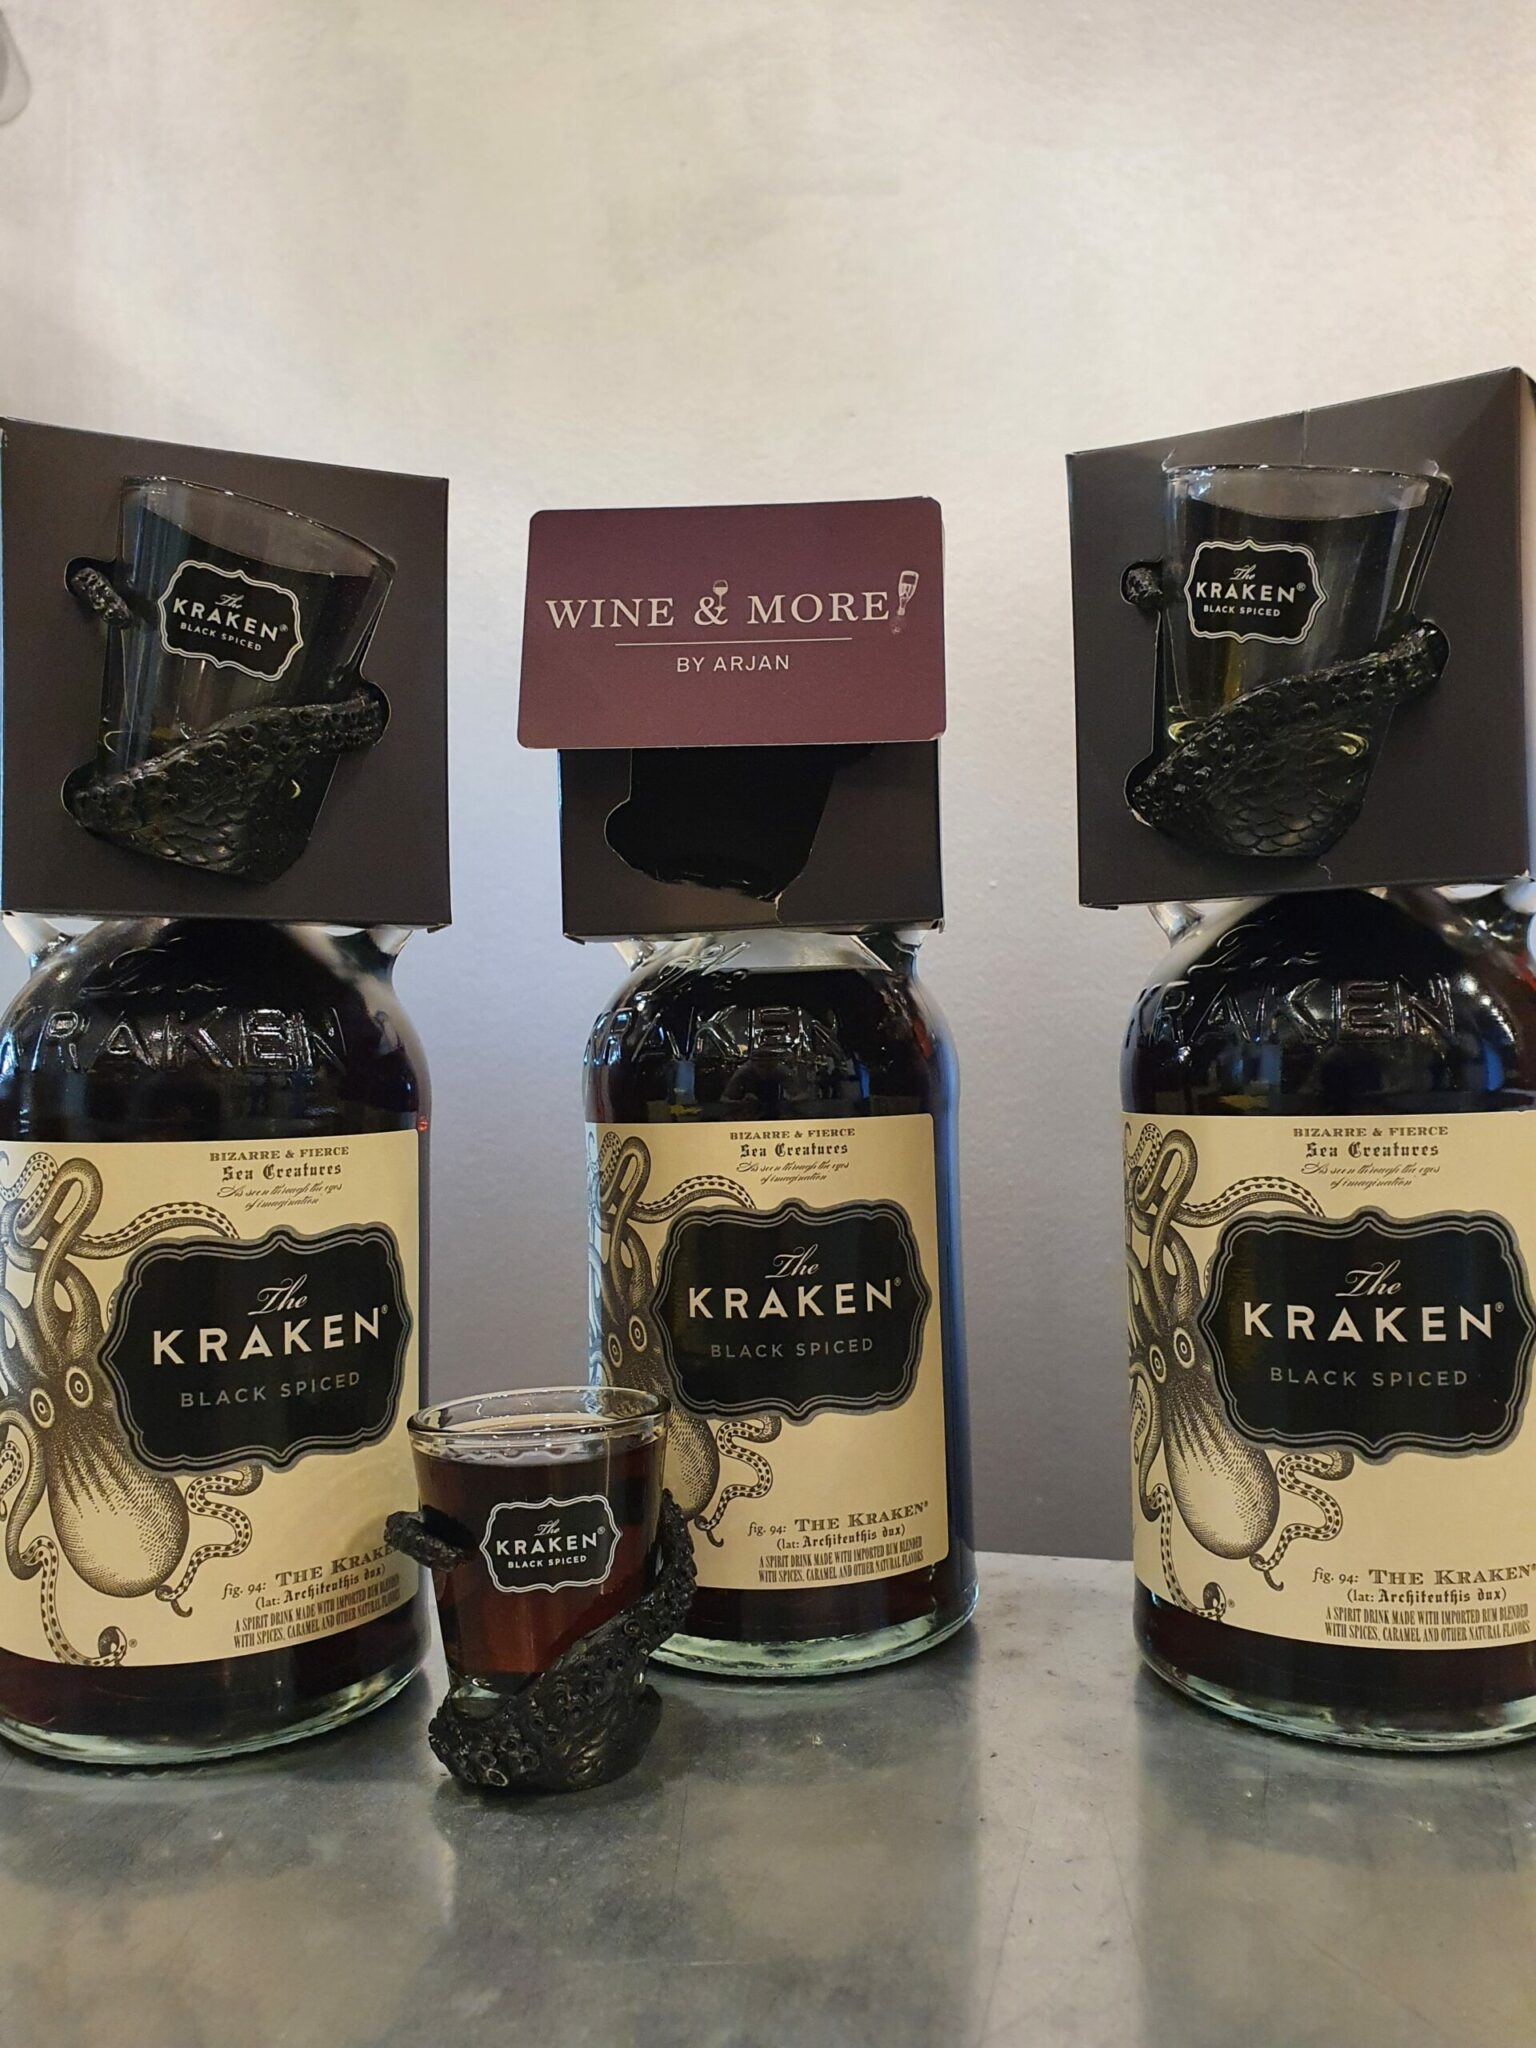 Wine & more rum Kraken